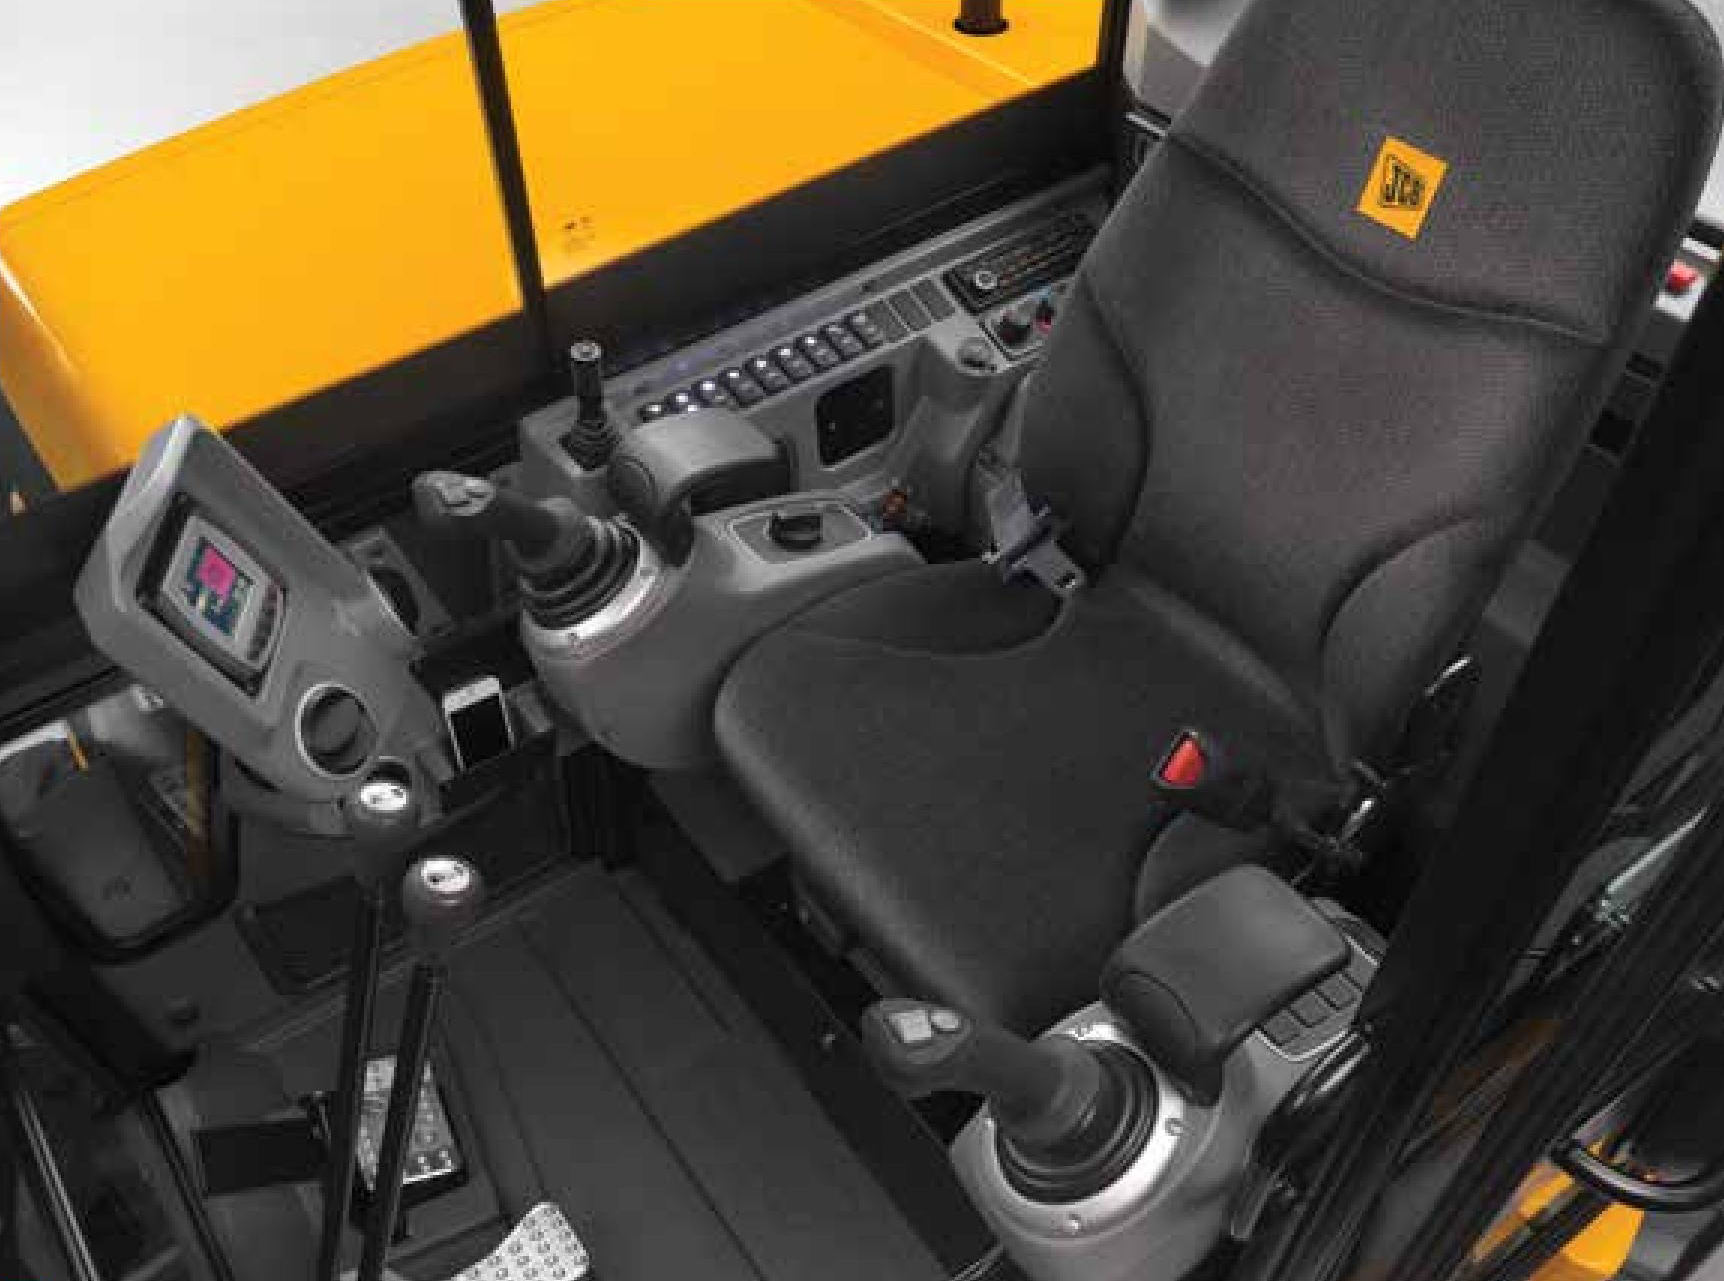 Holt Jcb 8t Comfort And Ease Of Use